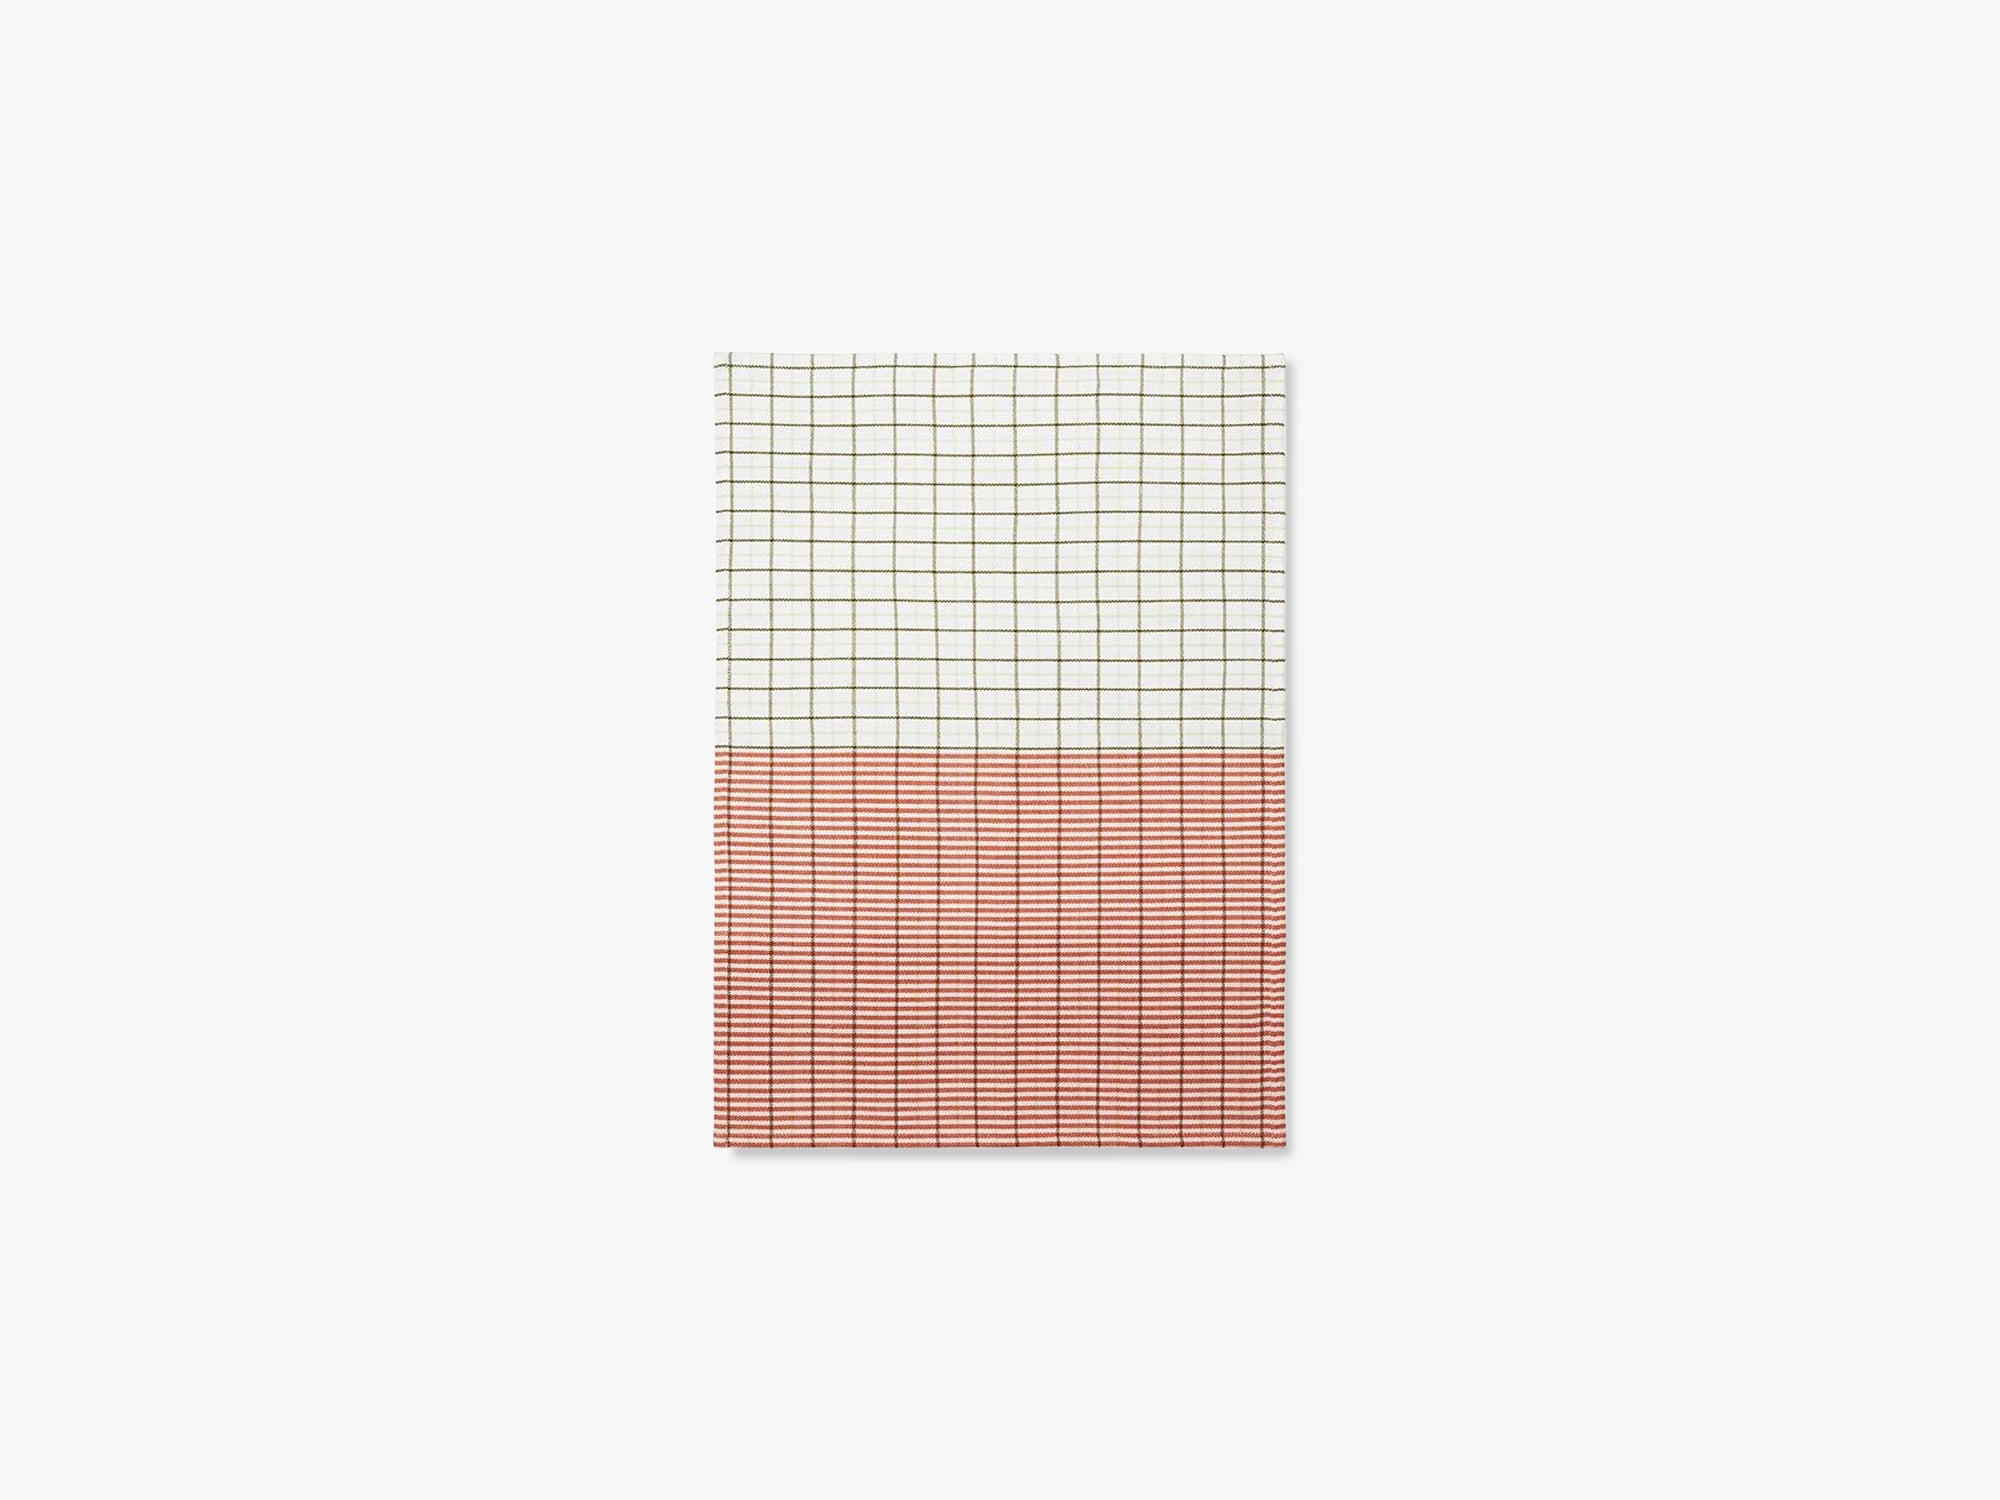 Ren viskestykke Stripe Grid, Sart grøn/spicy orange fra Normann Copenhagen